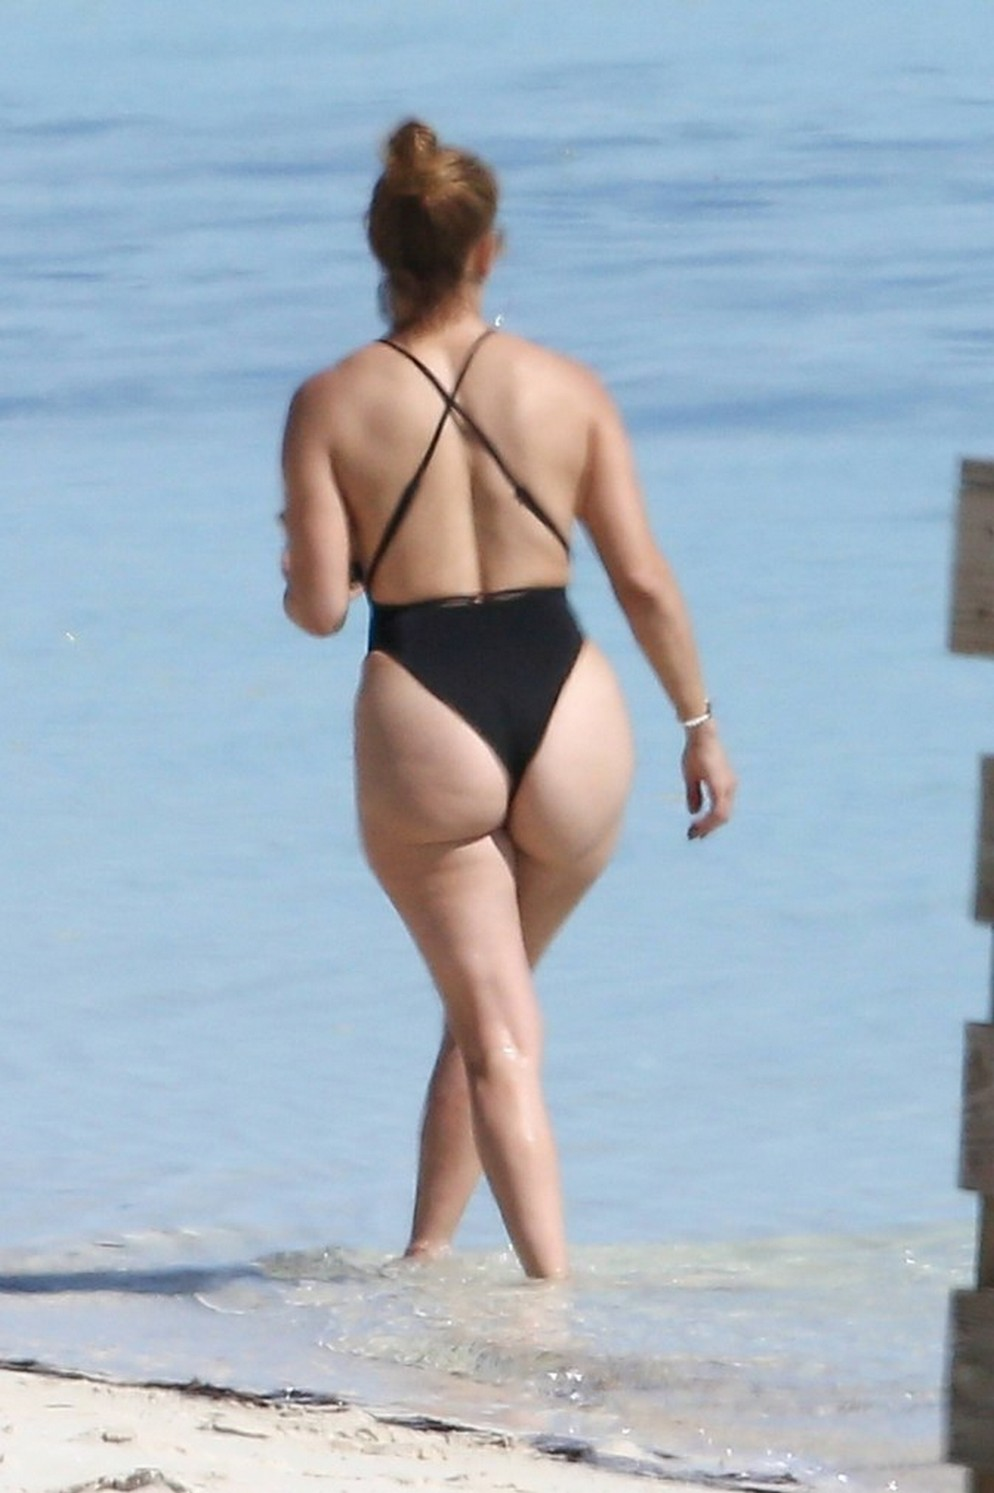 Jennifer Lopez fantastic big ass in a black thong swimsuit on the beach (7 pics)